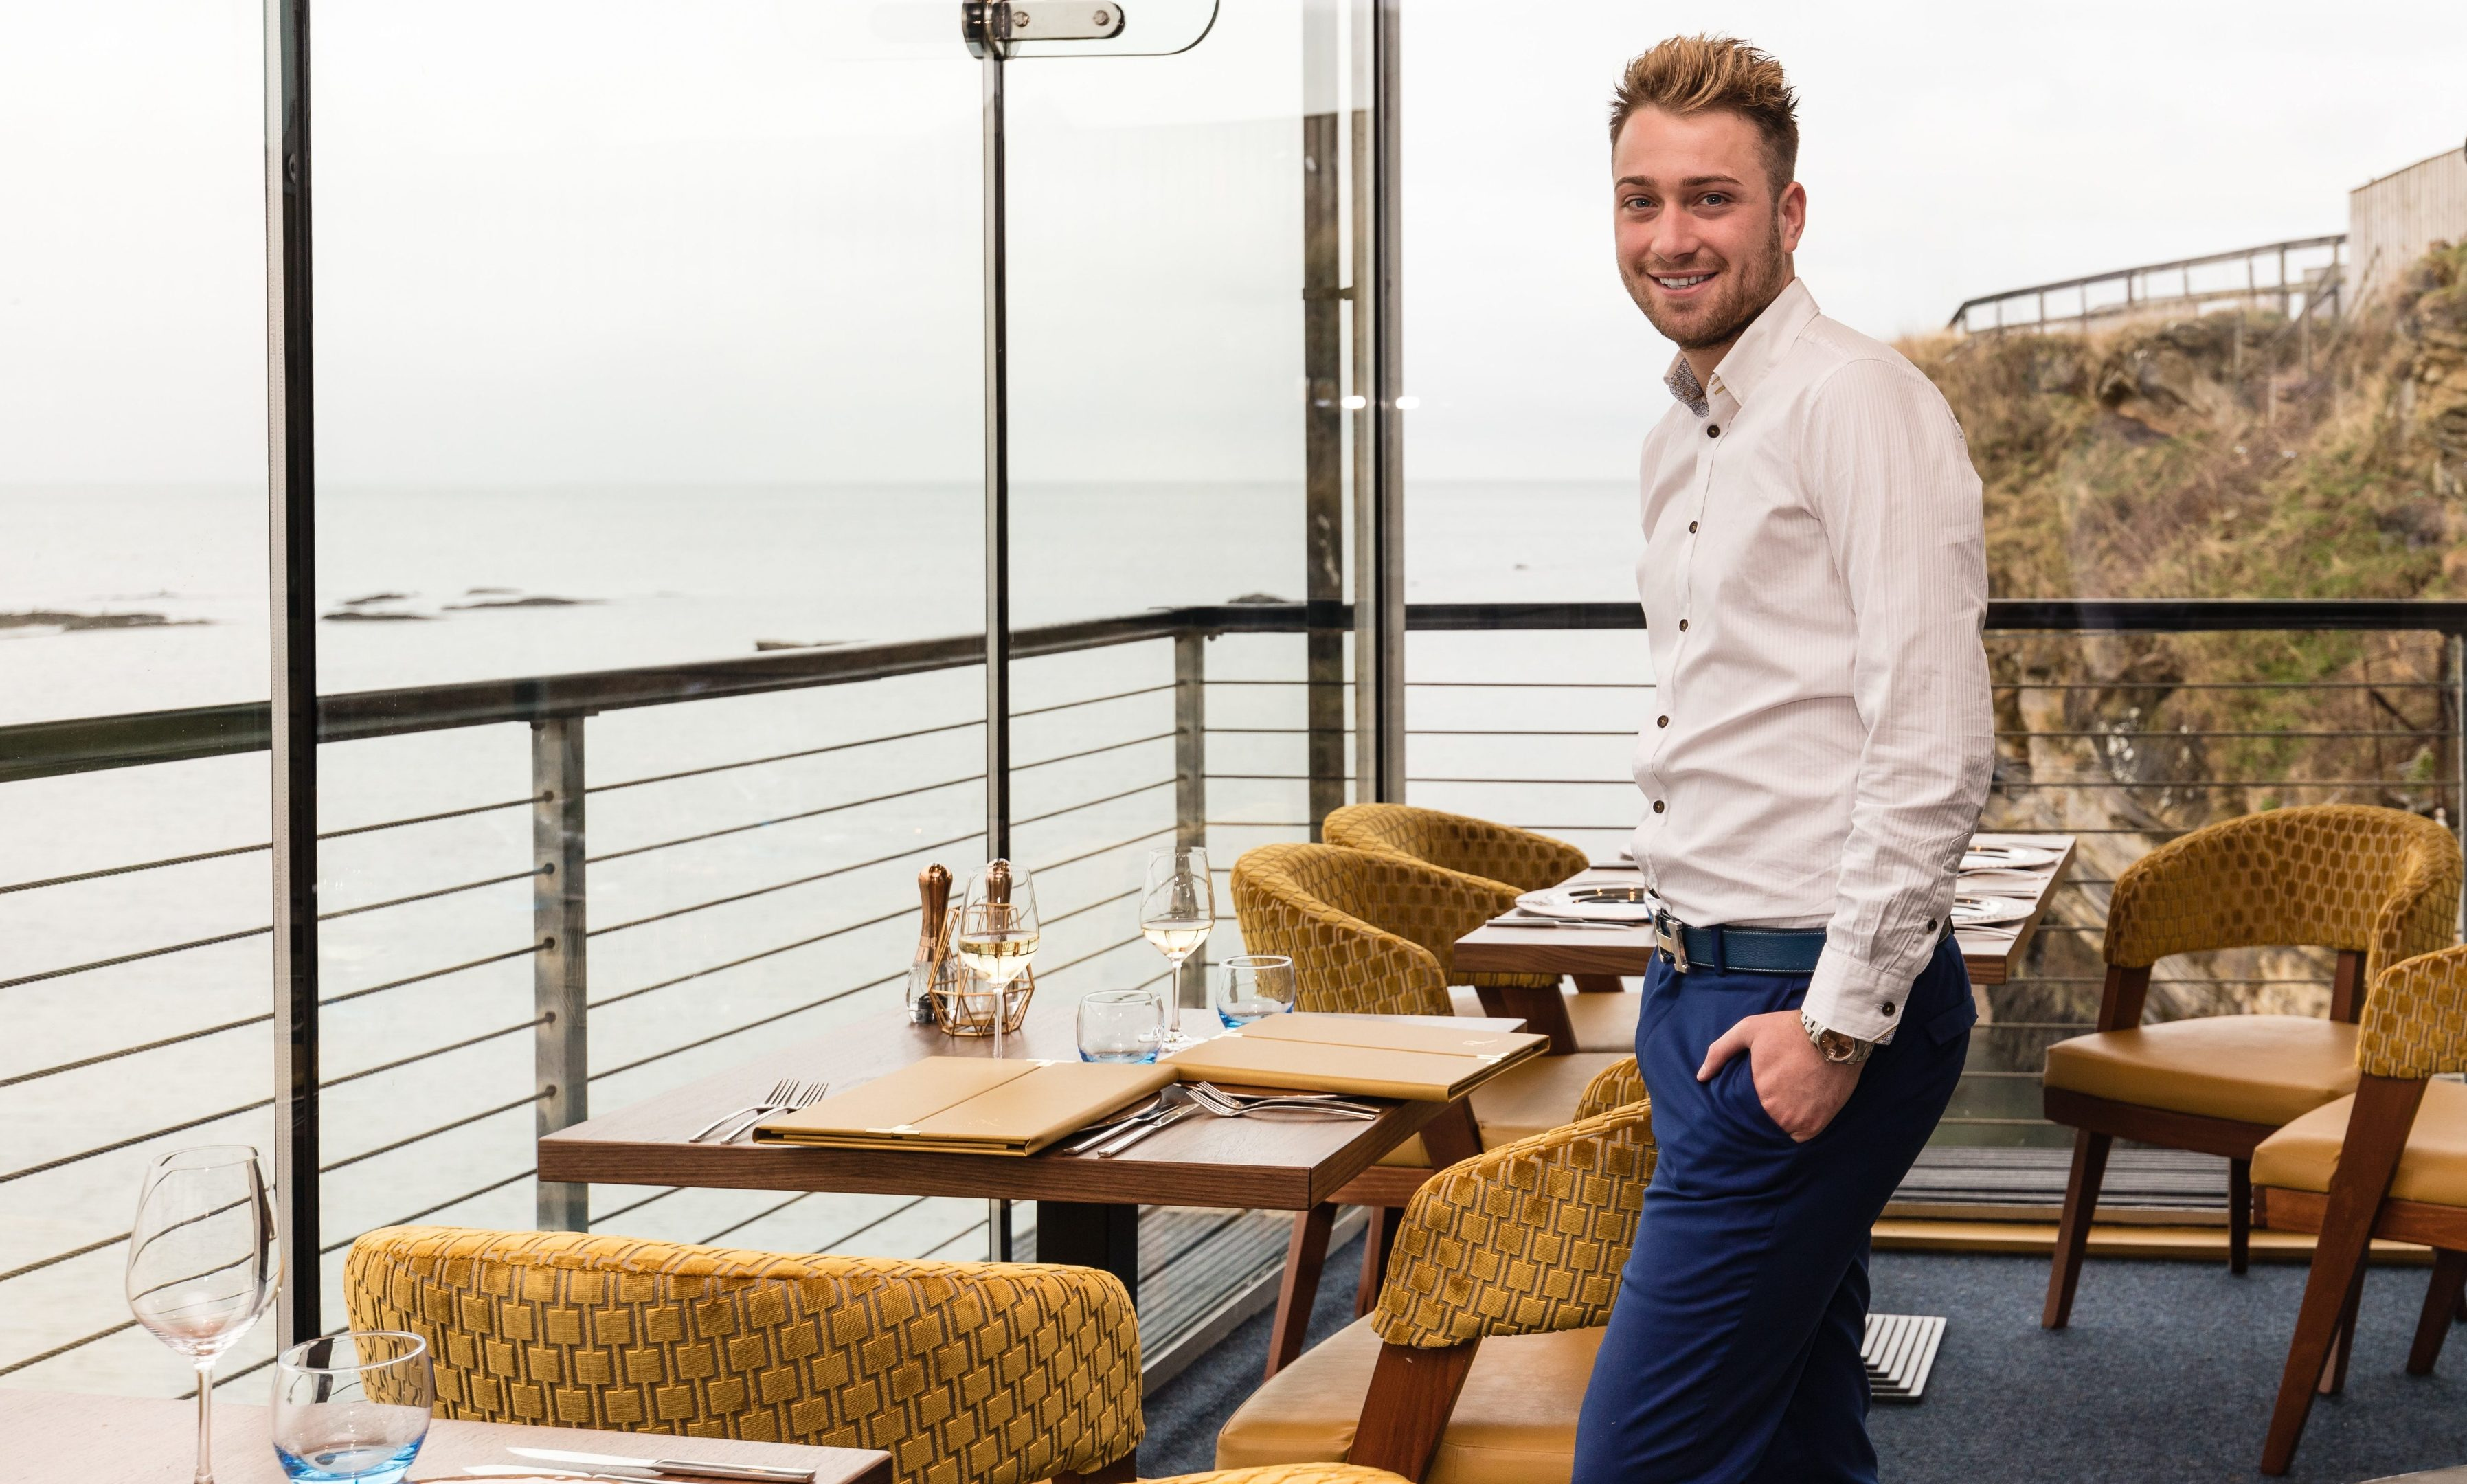 Stefano Pieraccini, new owner of the Seafood Ristorante at St Andrews